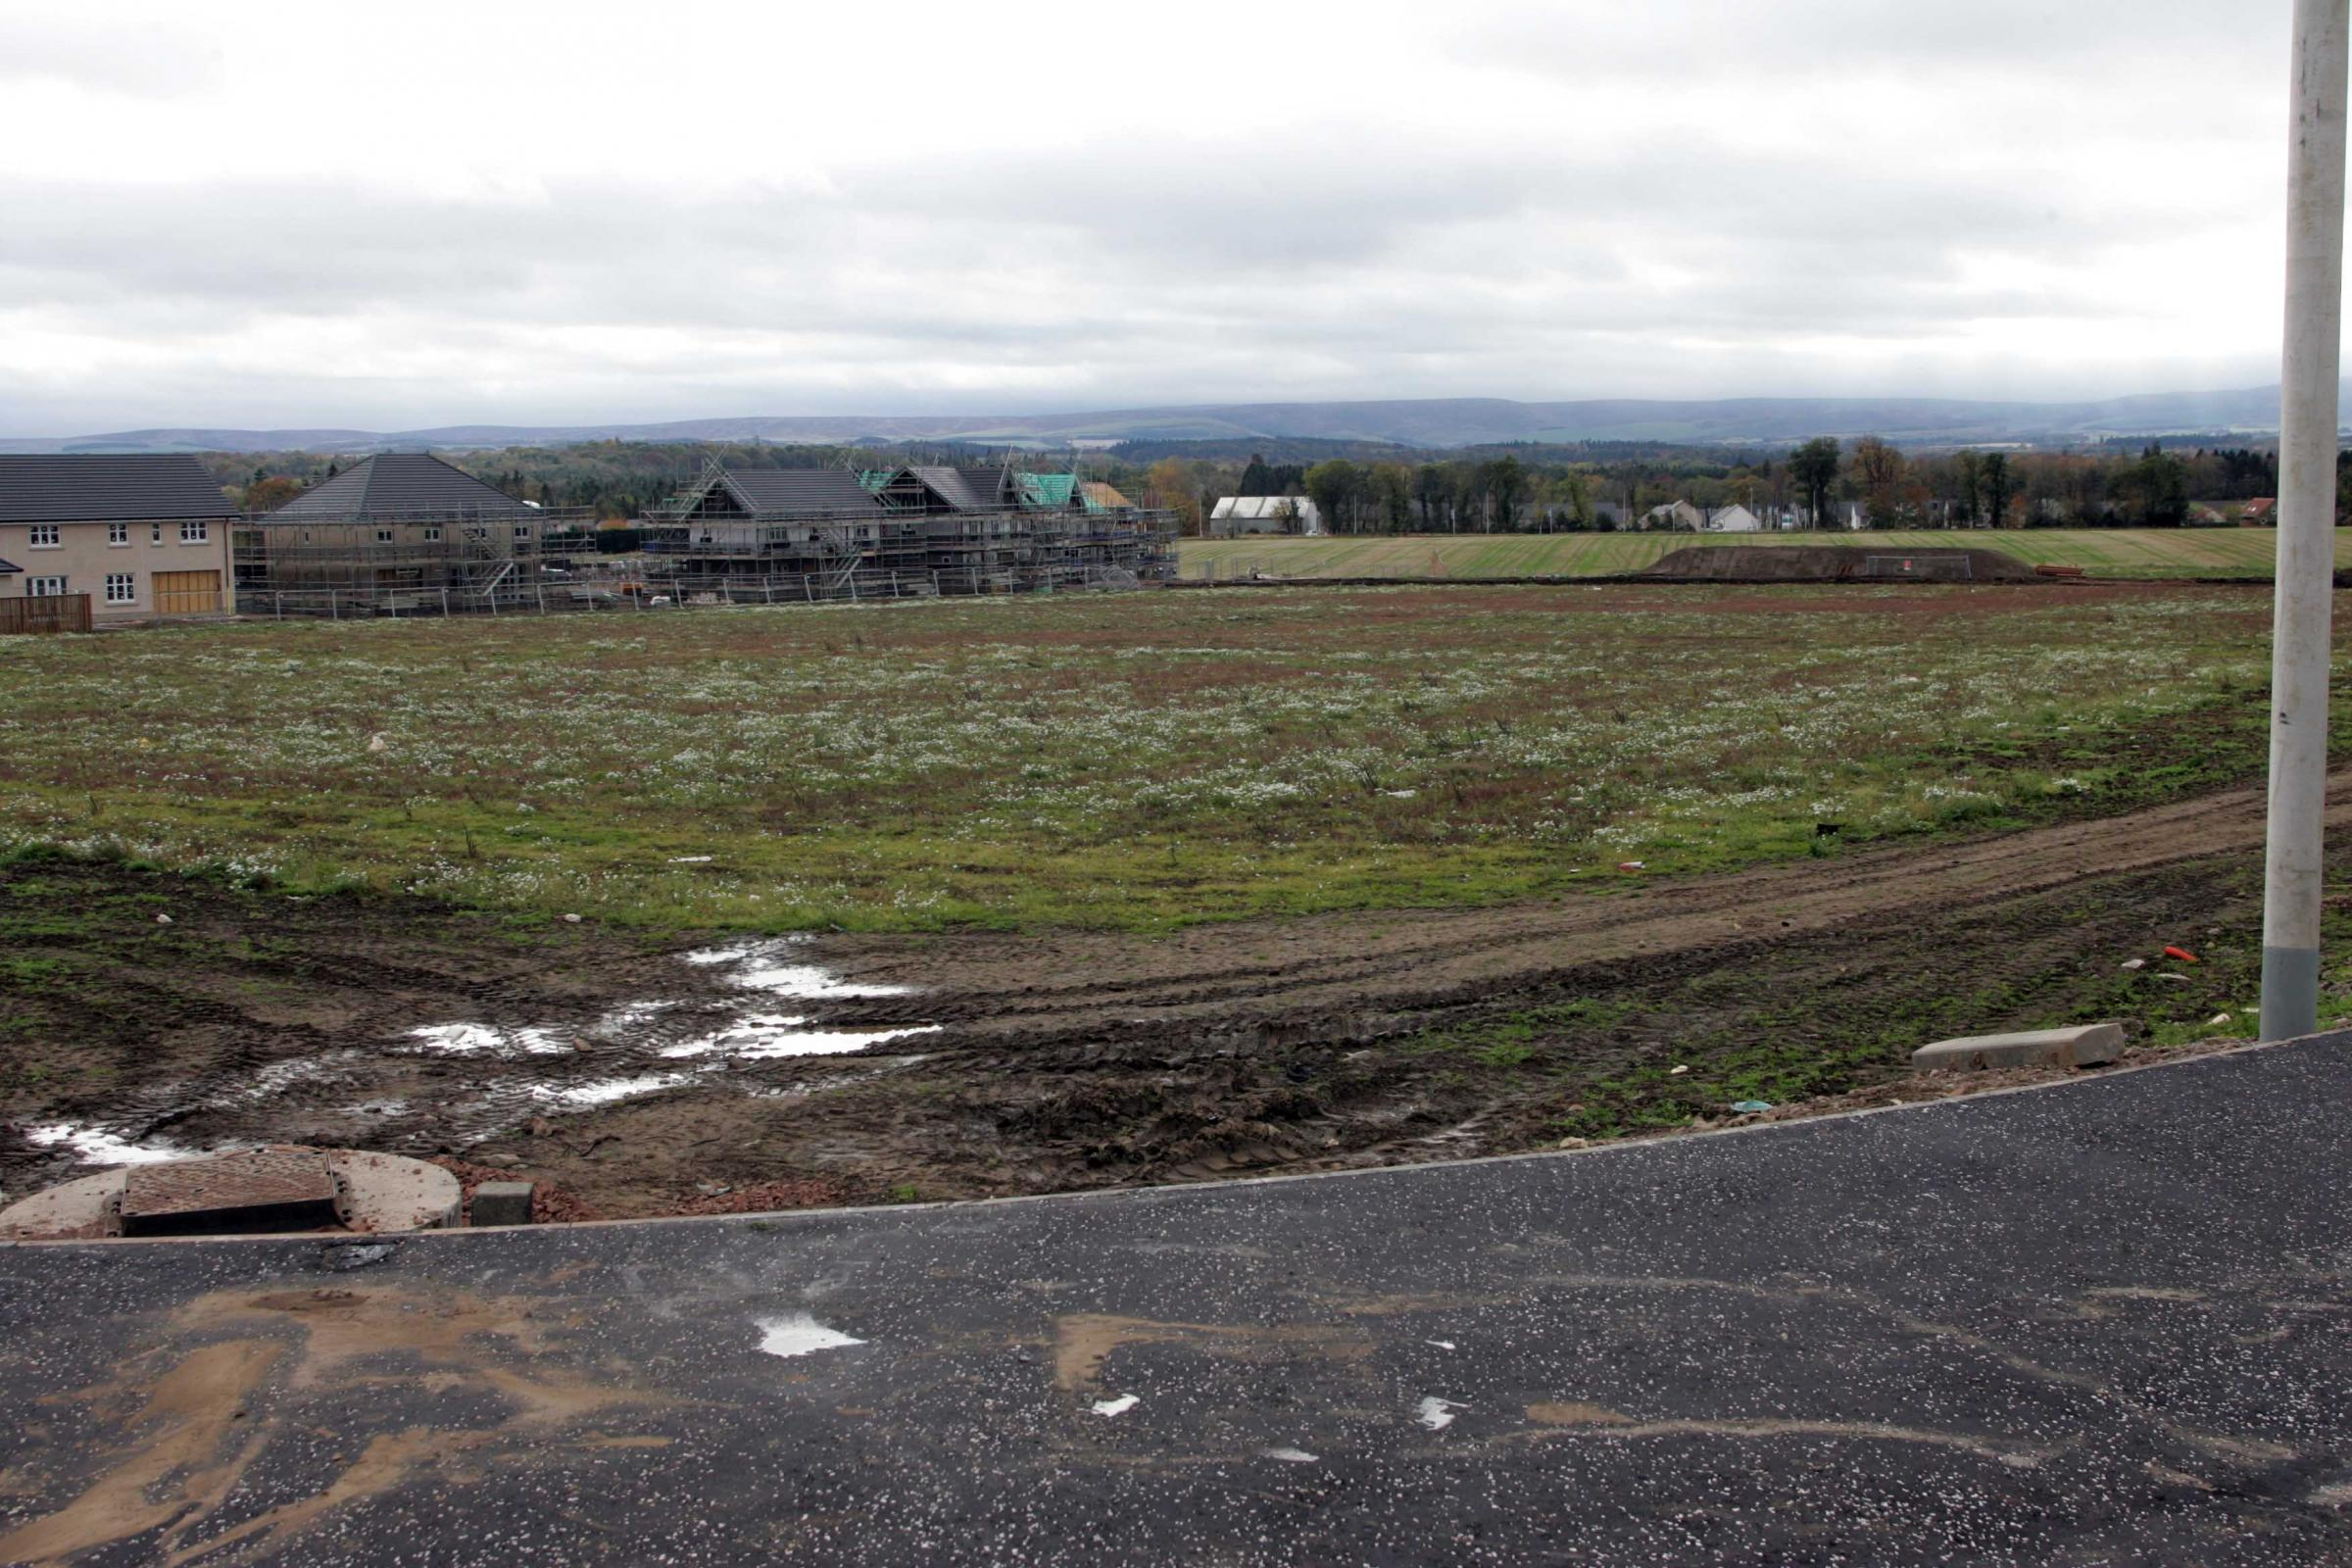 Work on a new school at the heart of the Letham Mains development will start in the New Year